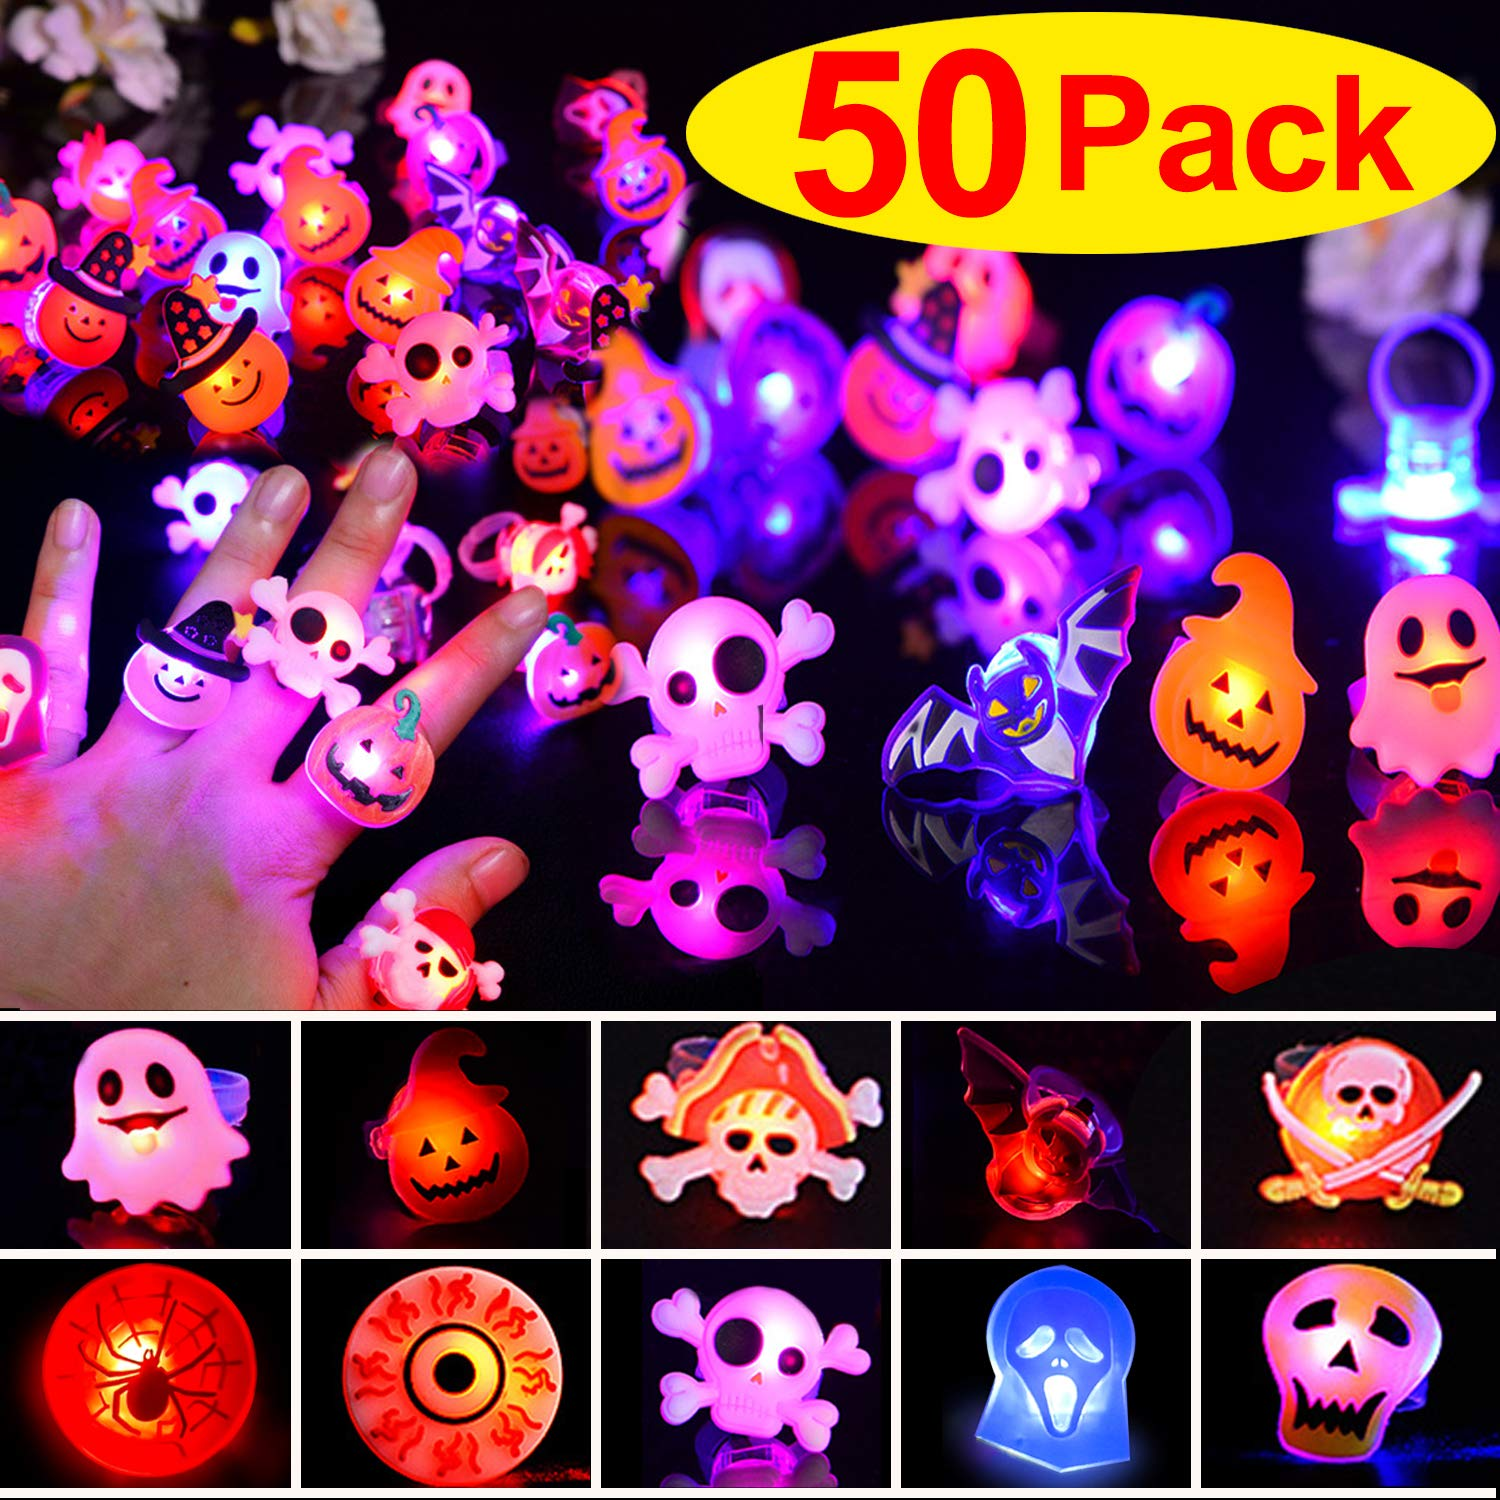 50 Pack LED Light Up Rings Halloween Glow in The Dark Party Supplies Birthday Party Favors for Kids Prizes Flashing LED Luminous Rubber Pumpkin Ghost Spider Finger Rings for Boys Girls Gifts 9 Styles by TURNMEON